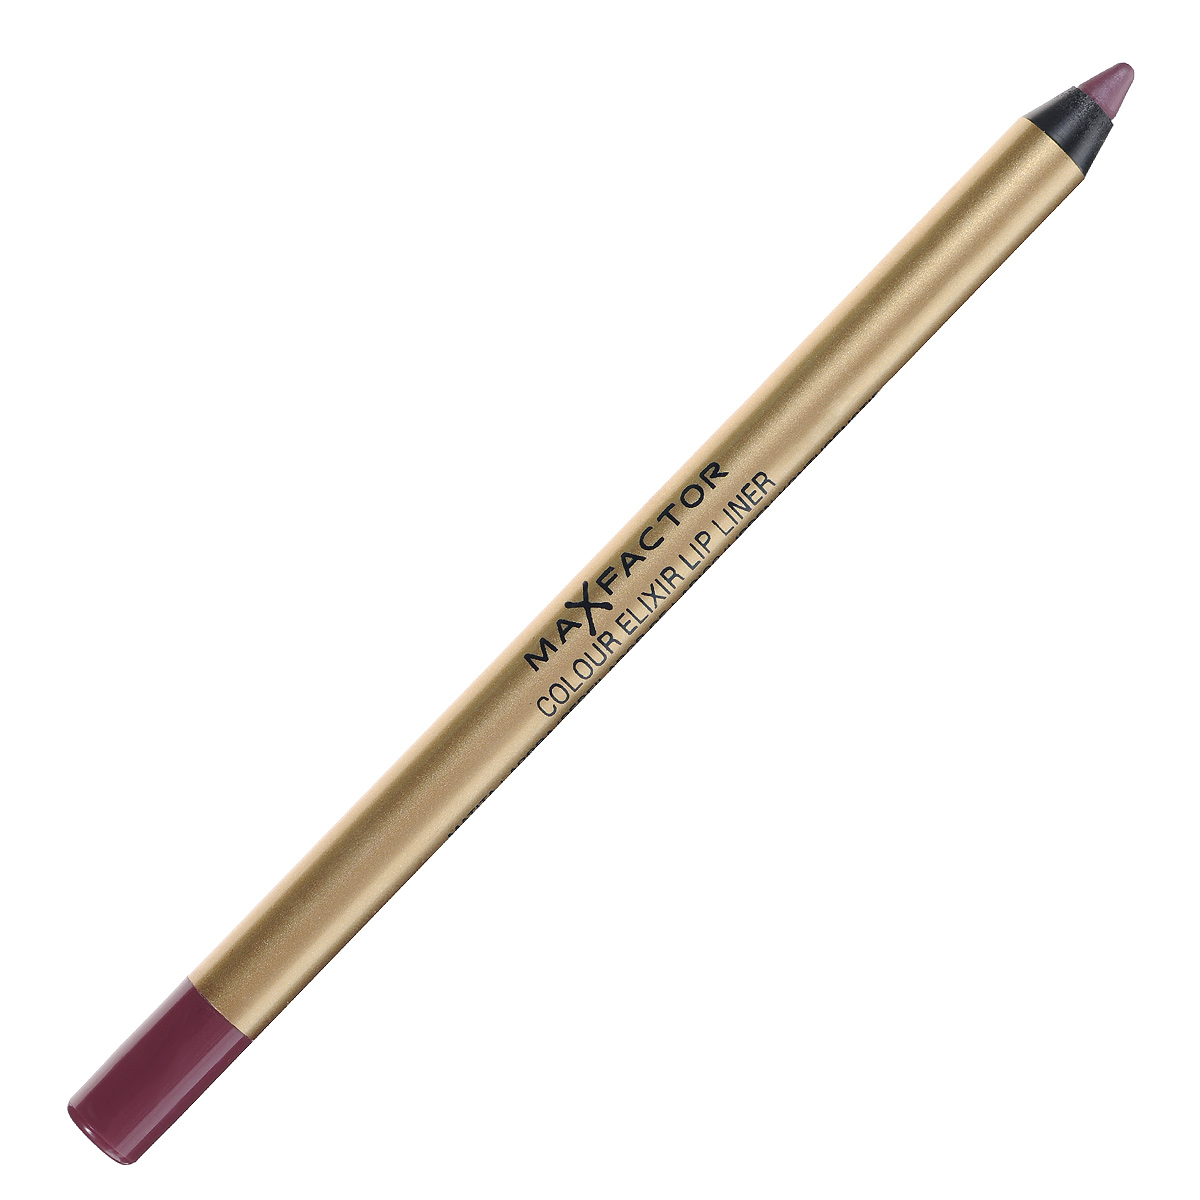 Max Factor Карандаш для губ Colour Elixir Lip Liner, тон №06 mauve moment, цвет: лиловый футболка wearcraft premium printio the spirit of munro indian